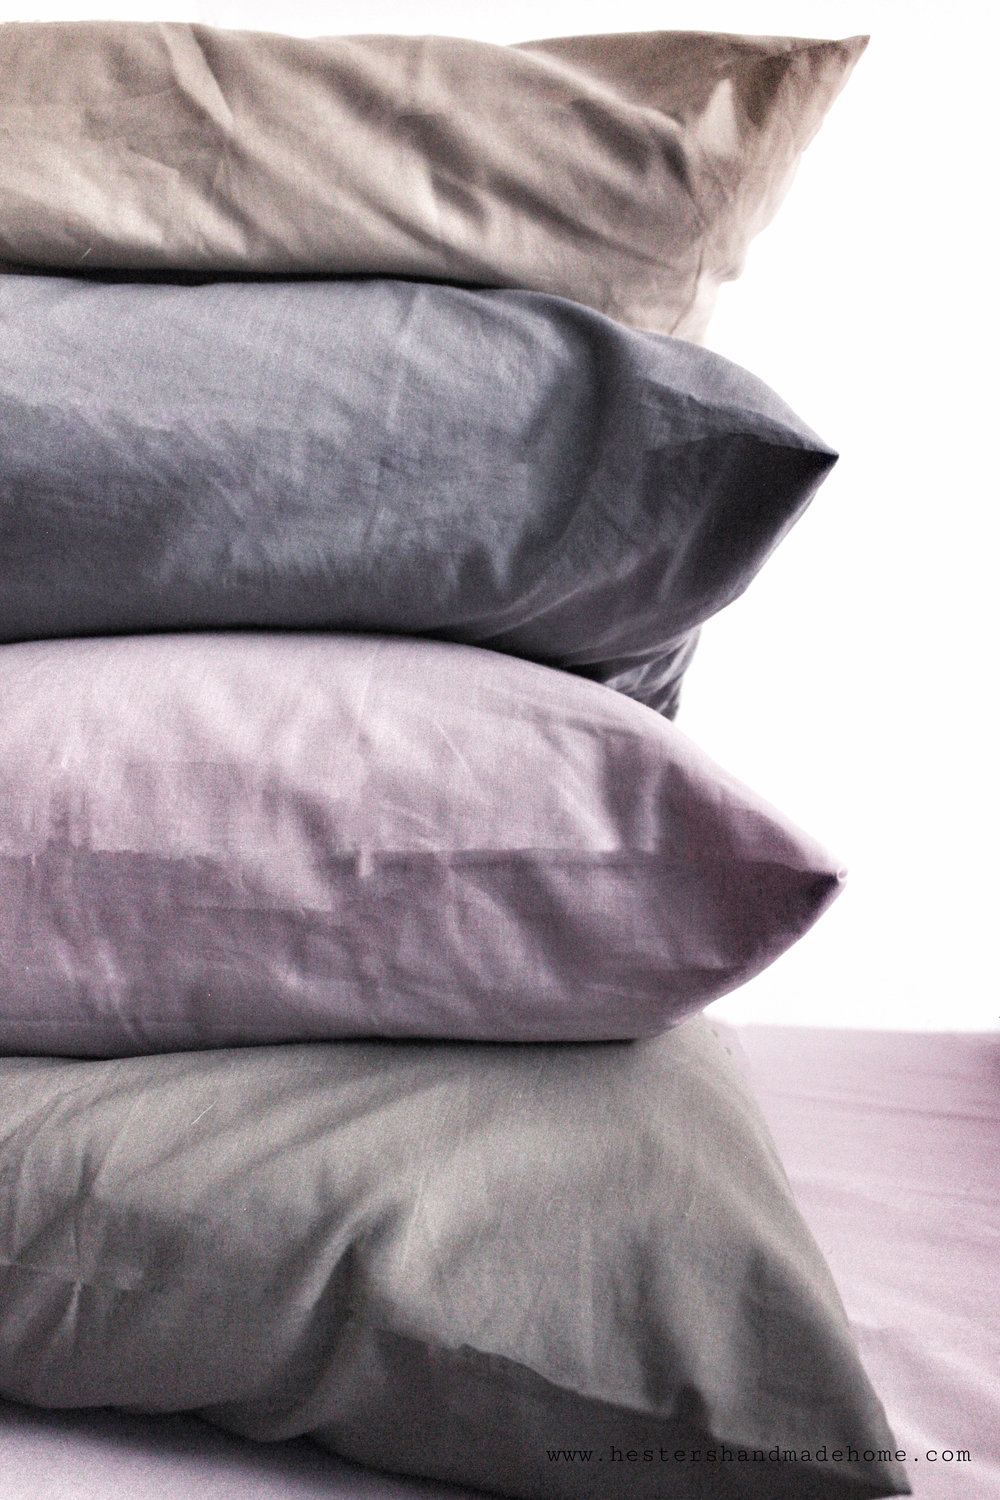 Use coloured pillows instead of scatter cushions, how to style your bed by www.hestershandmadehome.com